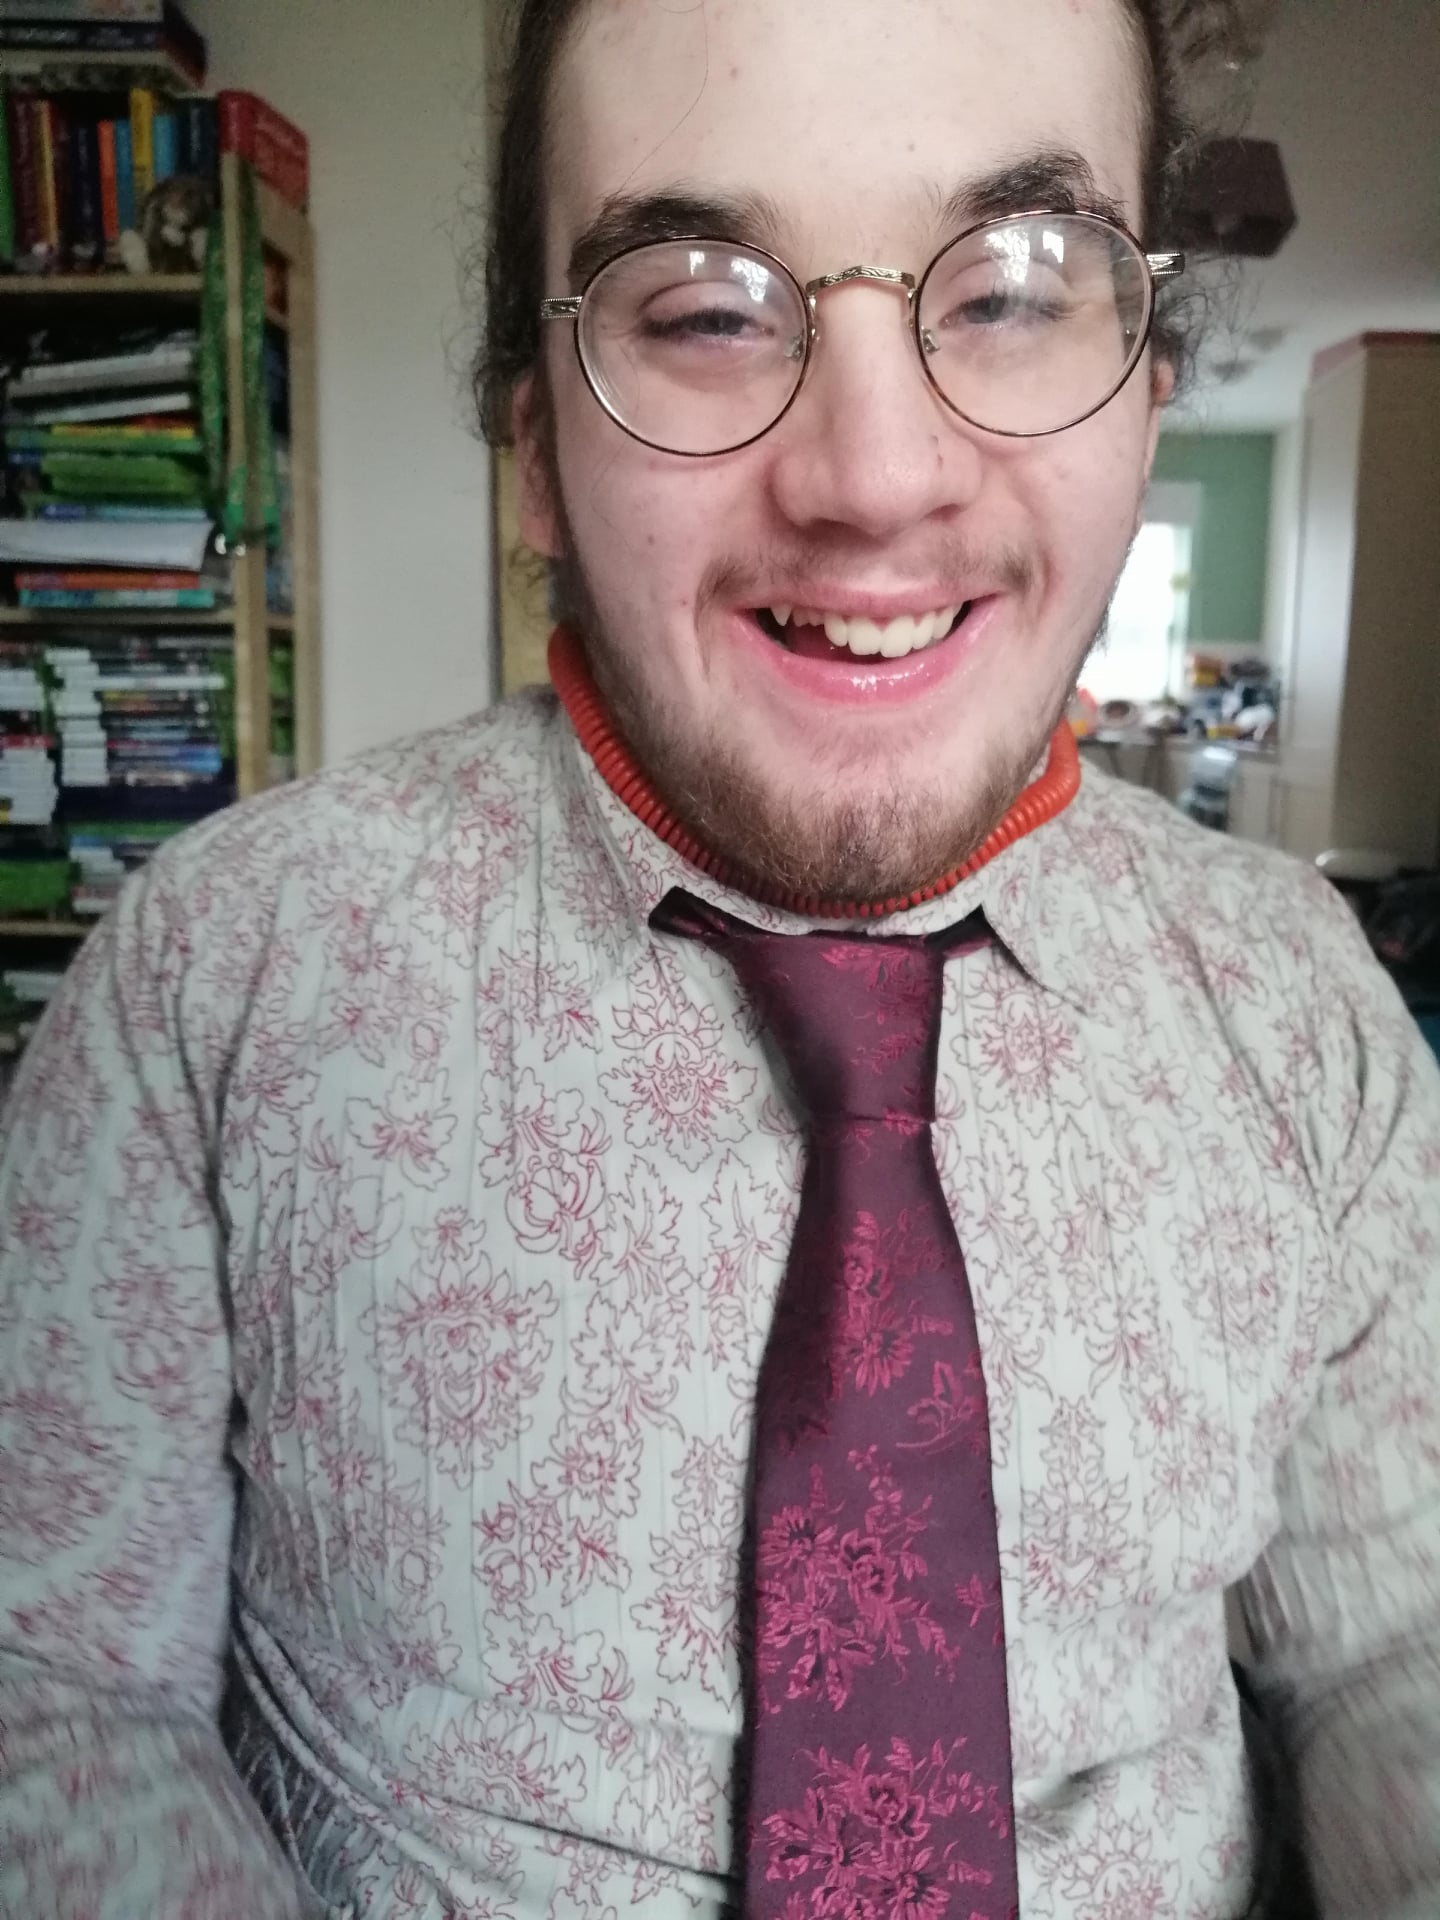 Owen wears a shirt and tie for his work placement